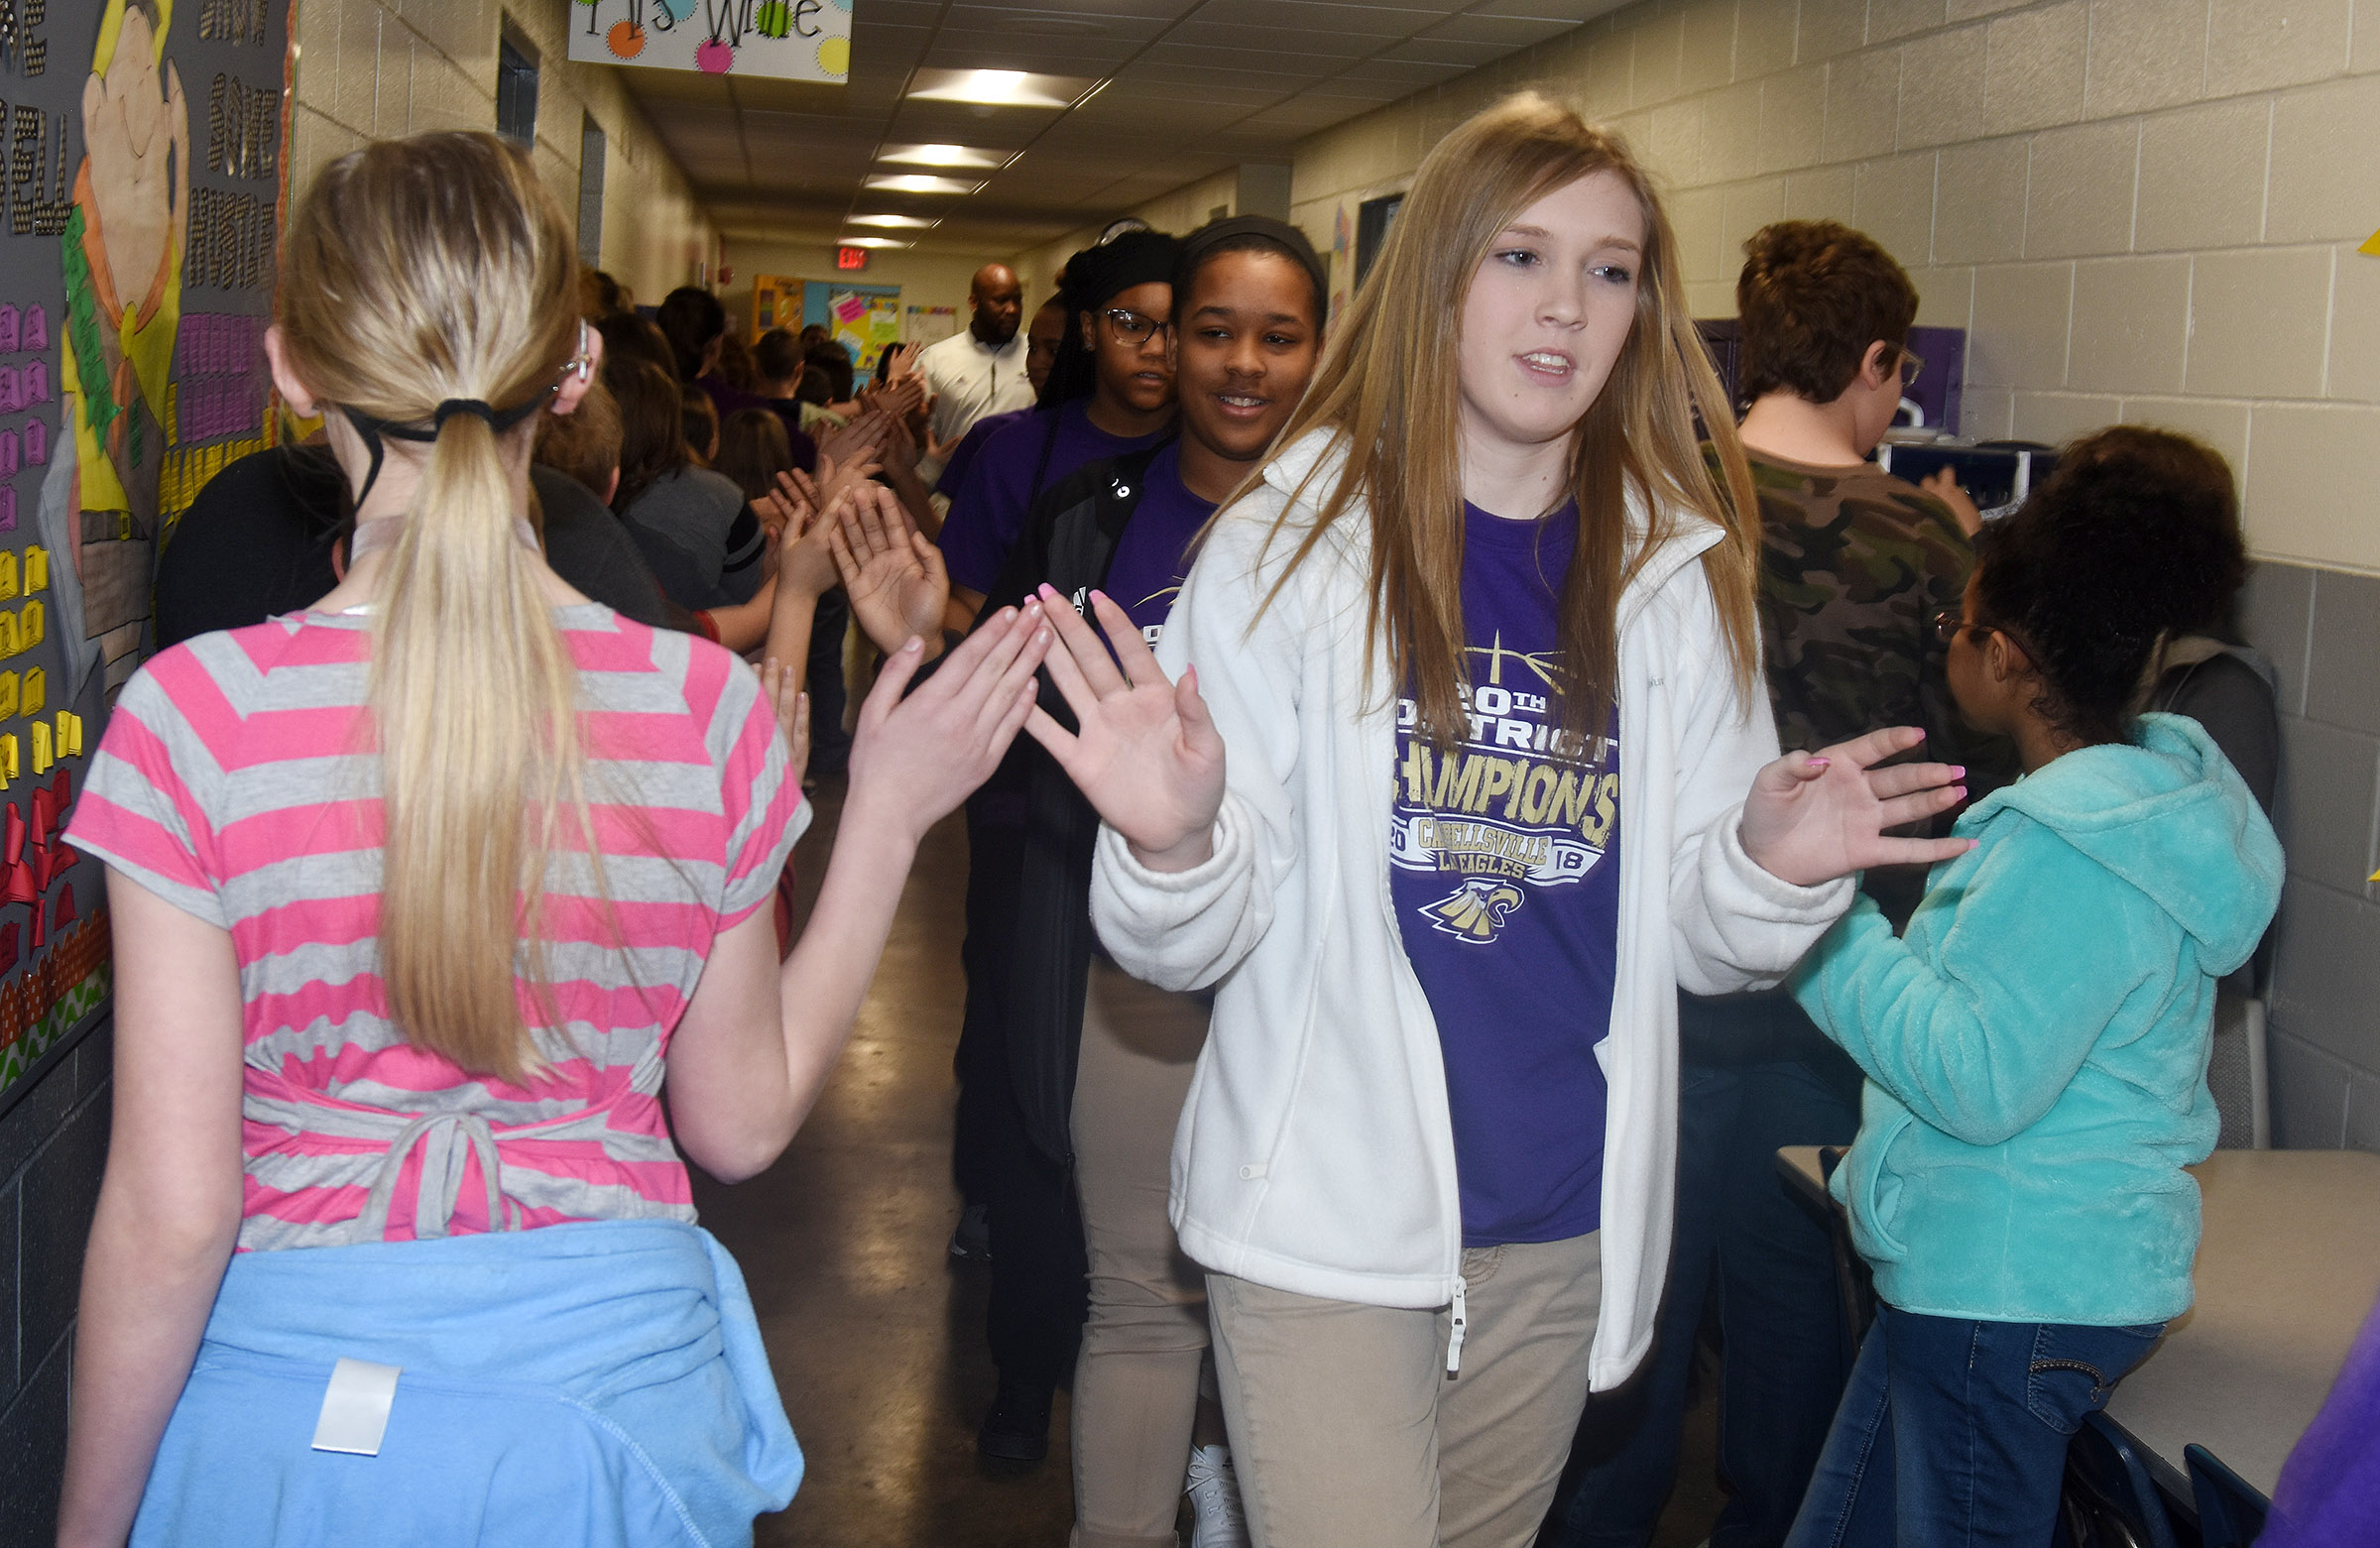 CHS girls' basketball player Catlyn Clausen, a freshman, and her teammates high-five CES students.